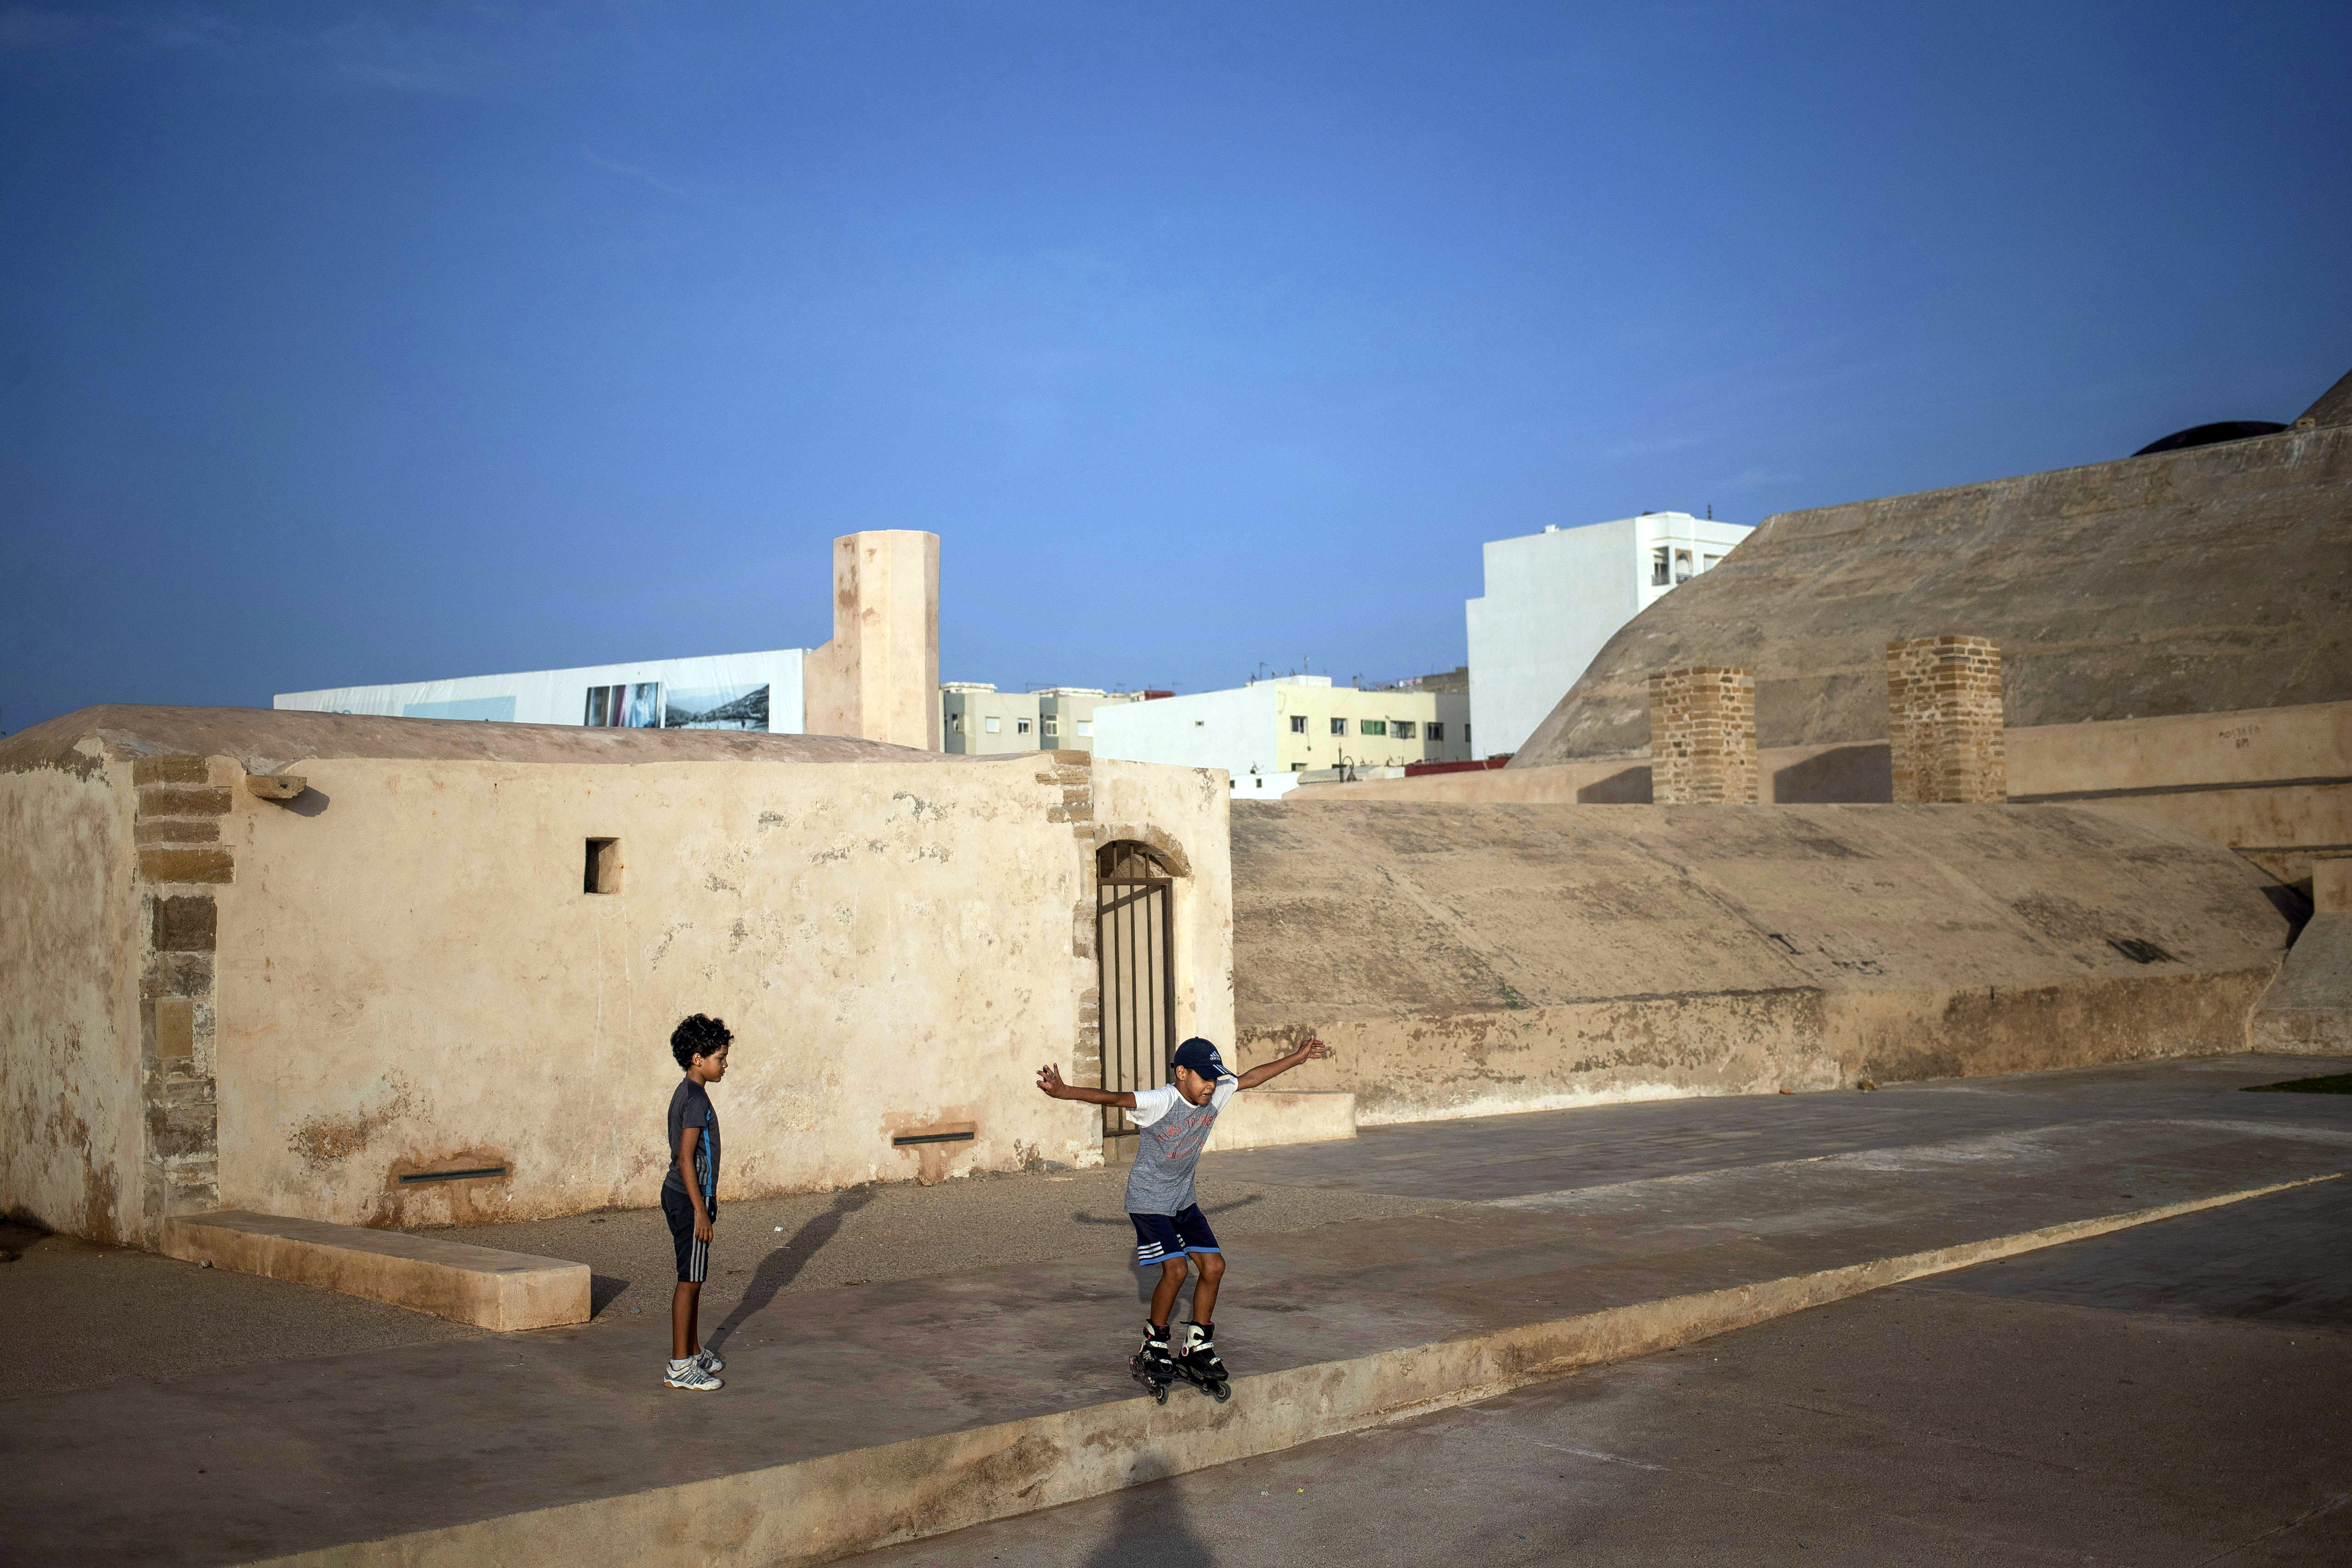 Morocco faces down COVID spread with tough rules